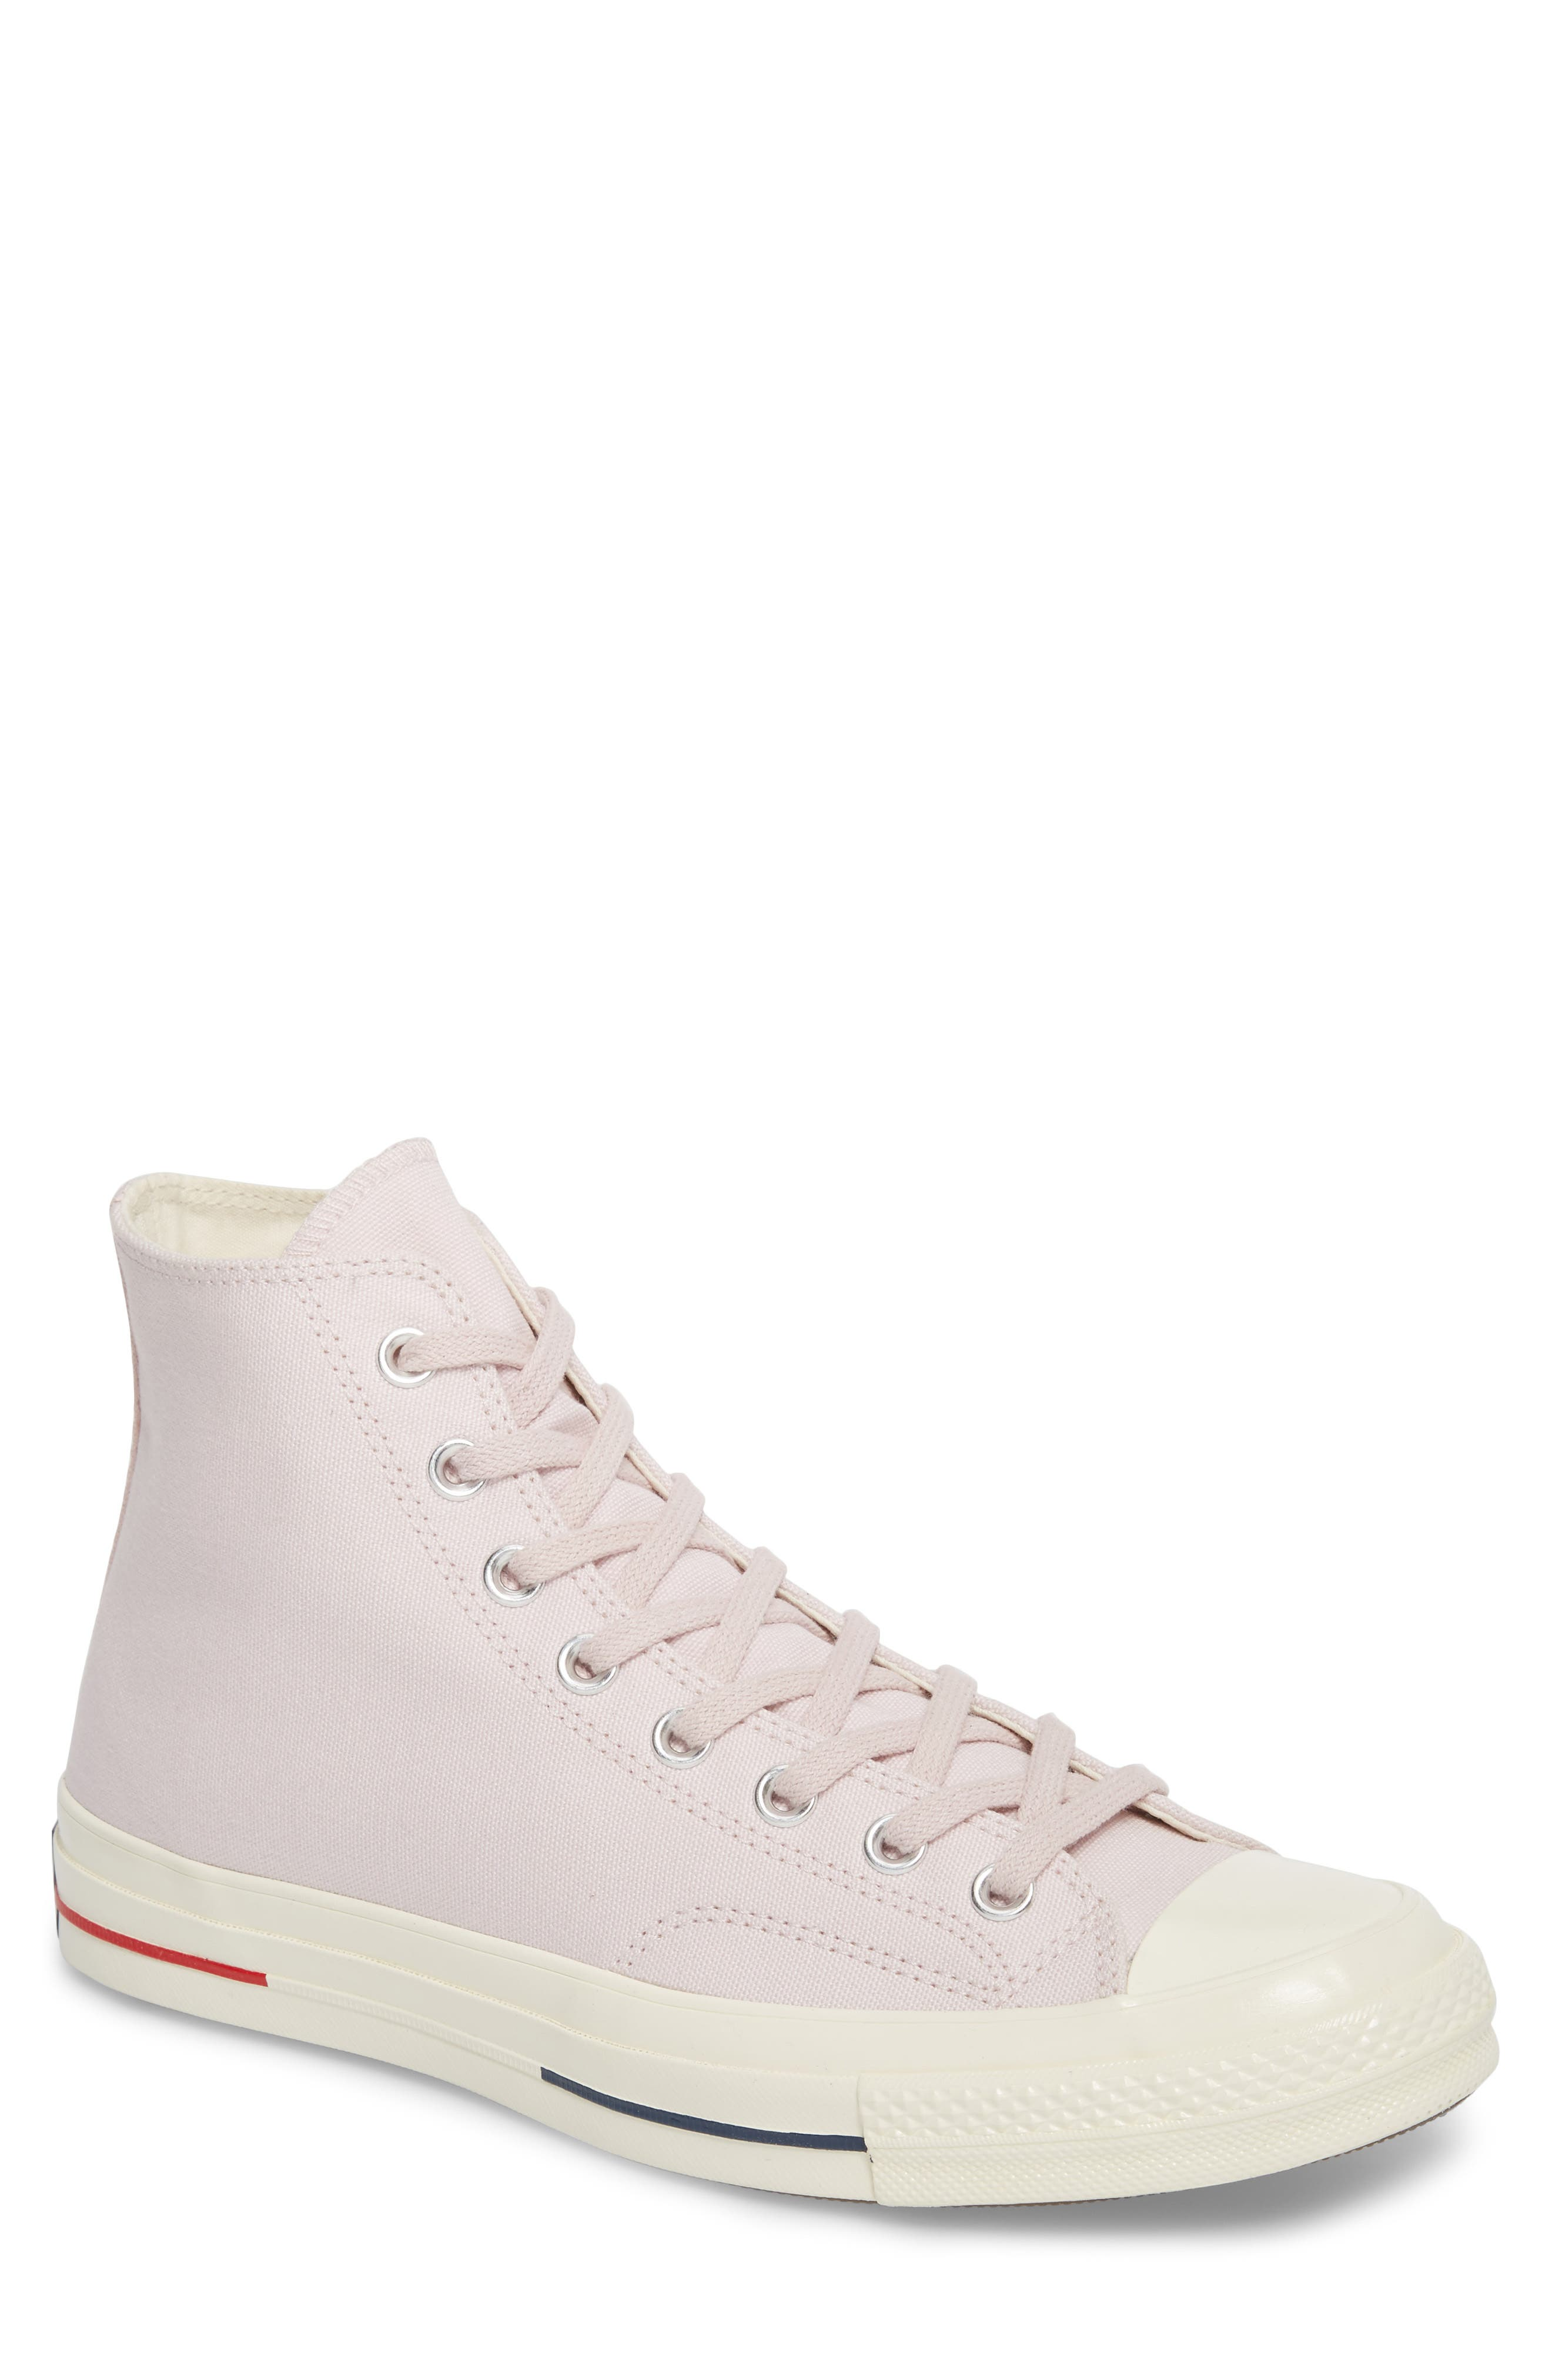 Chuck Taylor<sup>®</sup> All Star<sup>®</sup> '70 Heritage High Top Sneaker,                         Main,                         color, Barely Rose